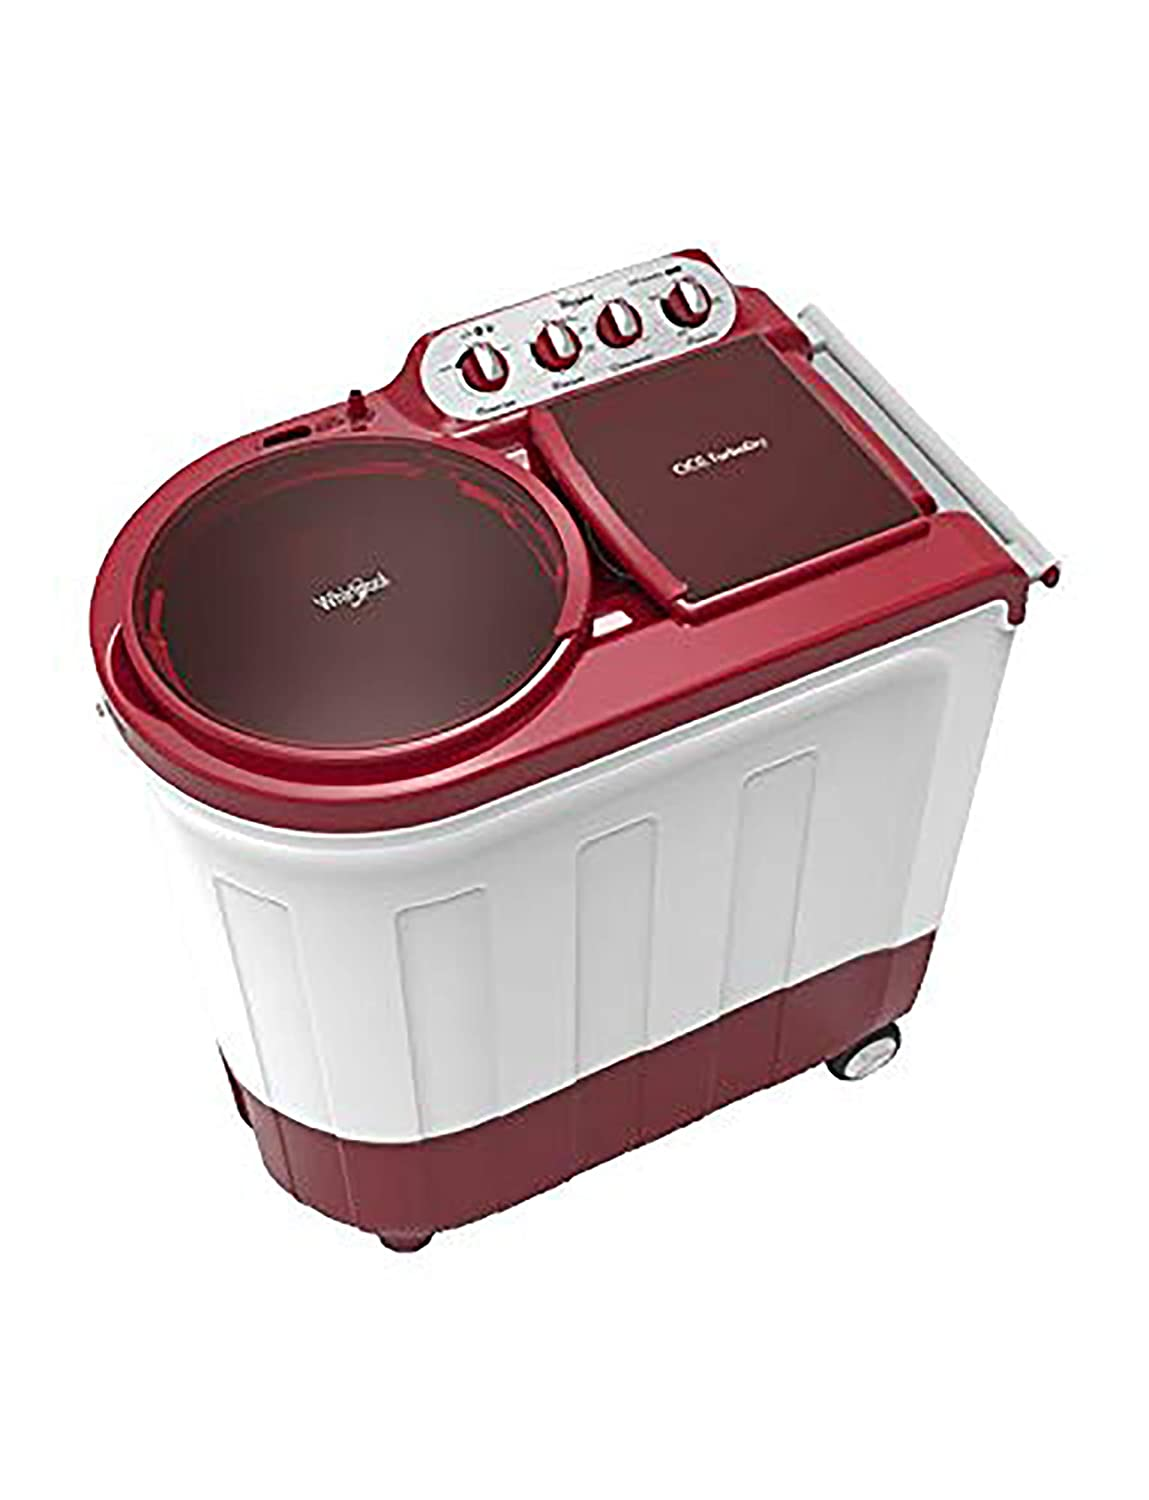 Whirlpool 8.5Kg Semi Automatic Top Loading Washing Machine Coral Red ACE 8.5 TURBO DRY Image